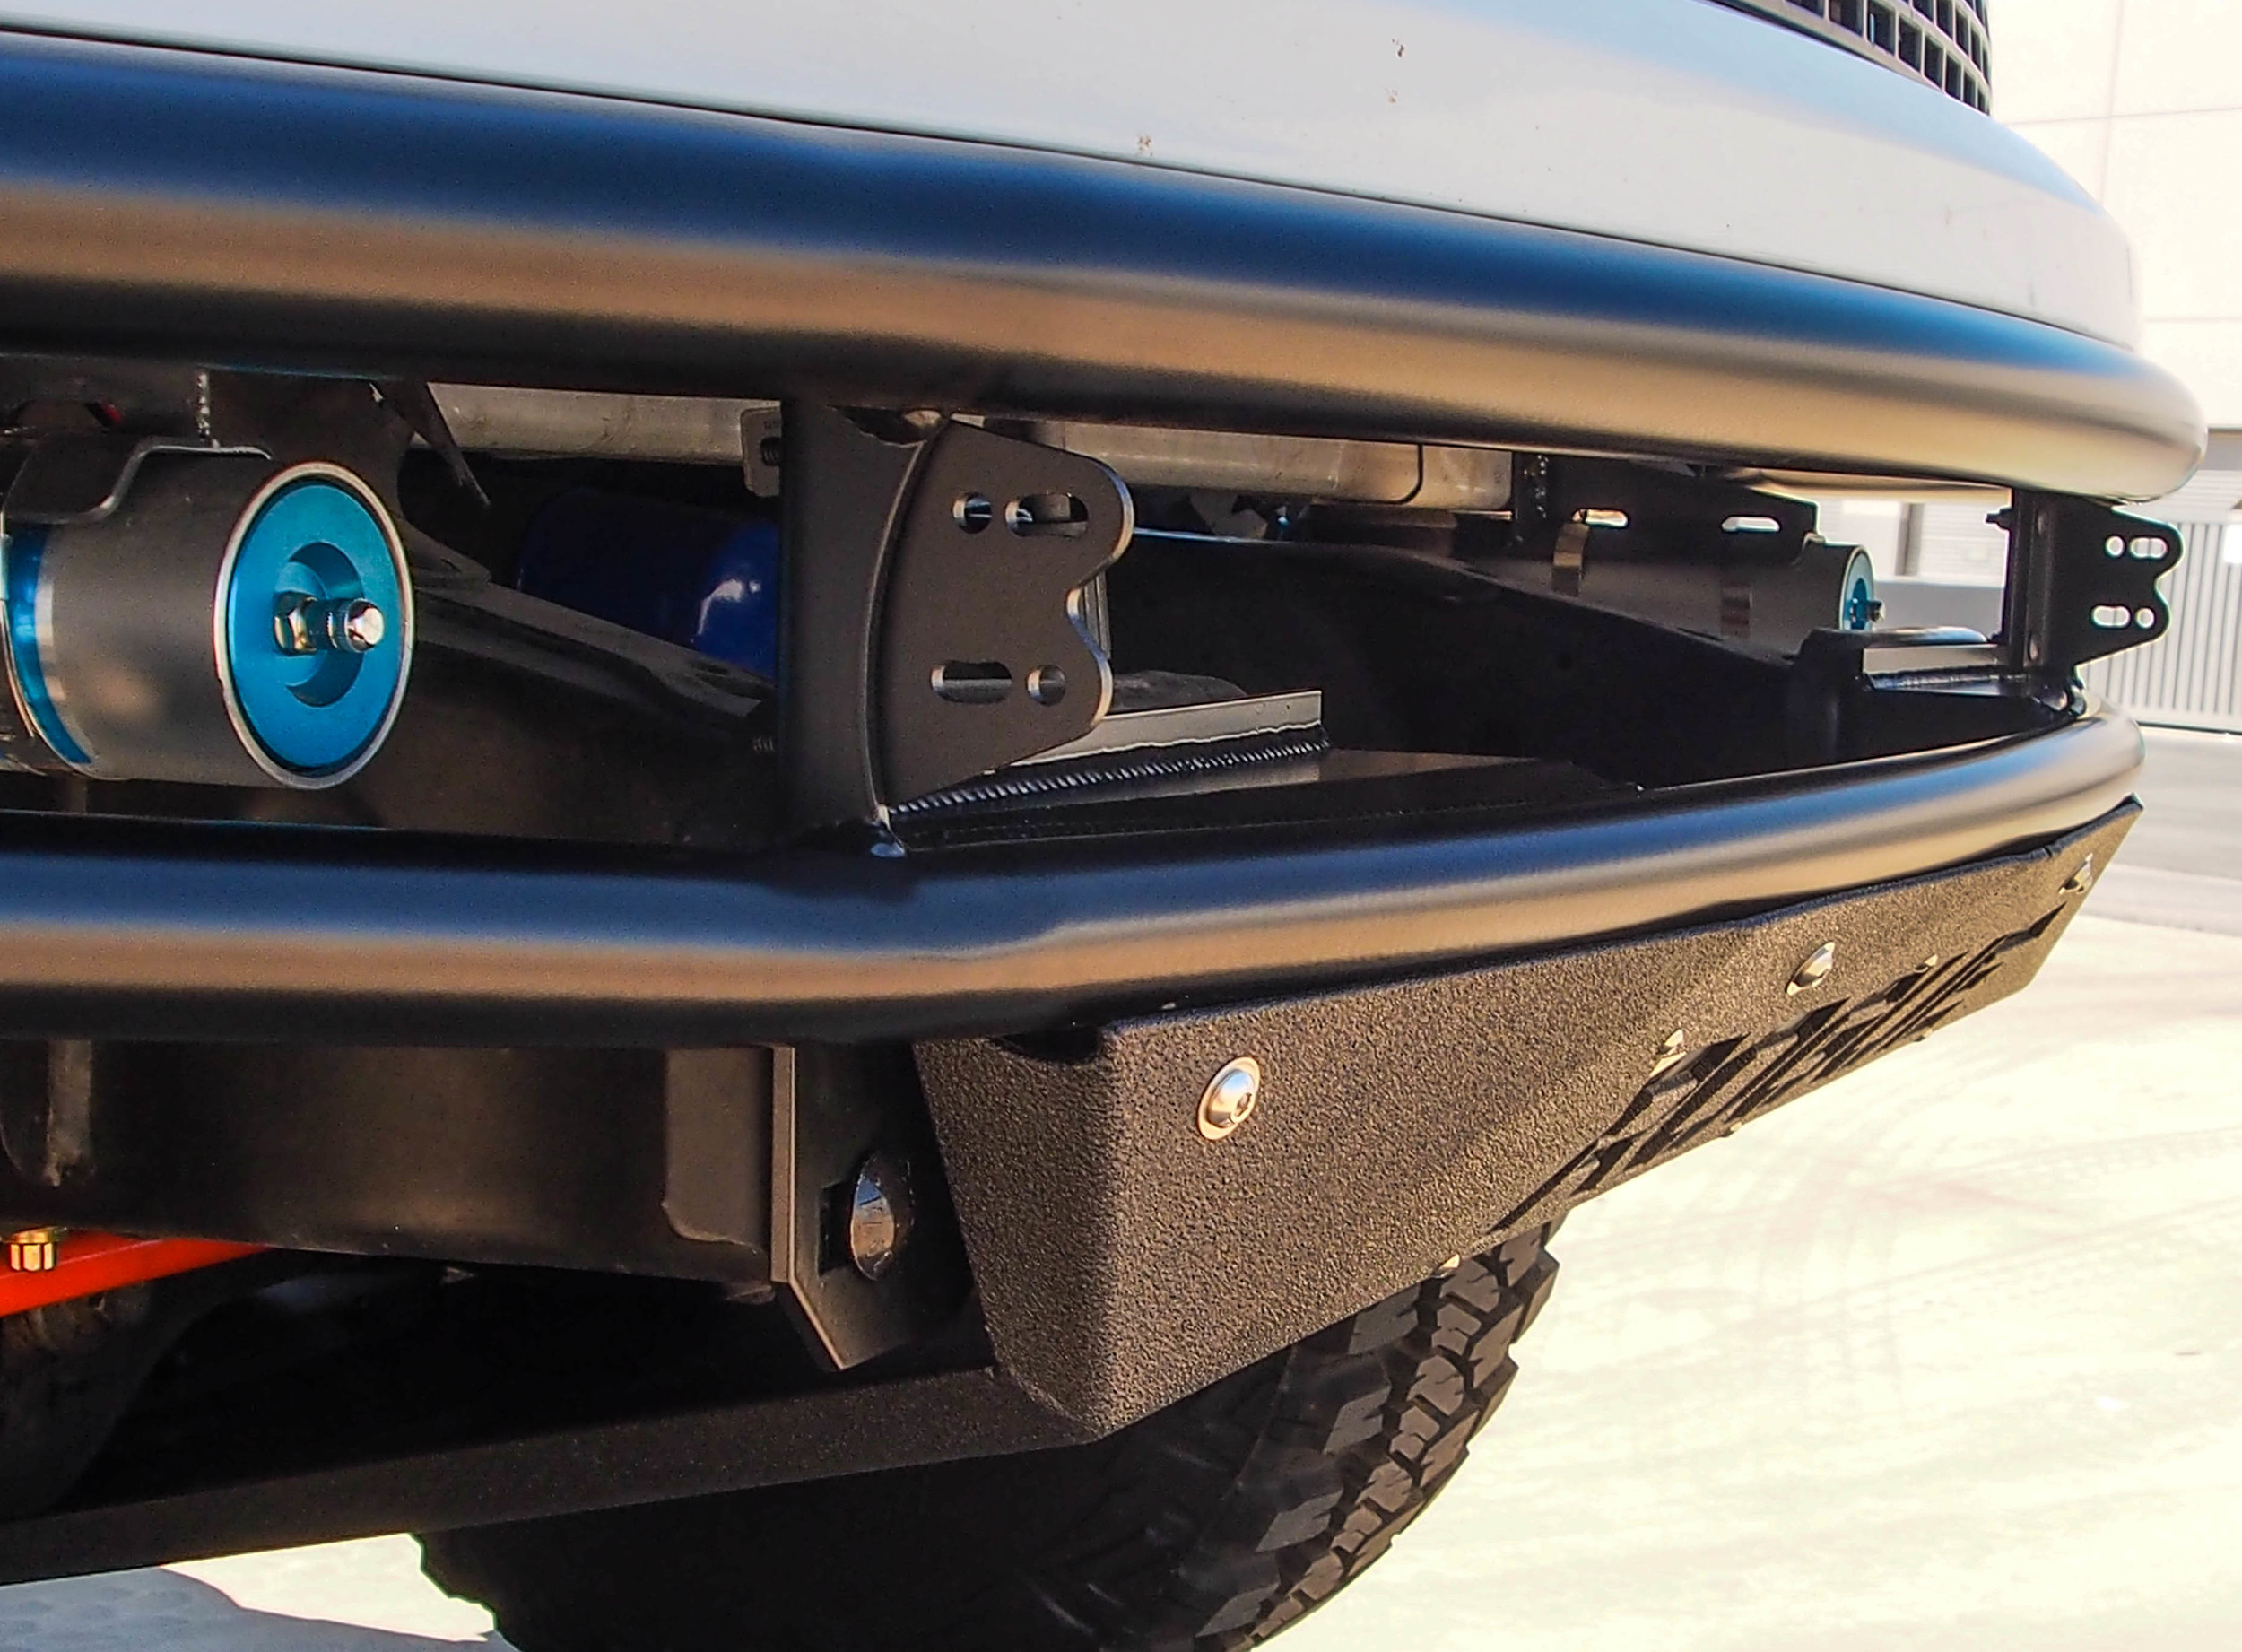 Velocity-front-bumper-main-led-light.jpg